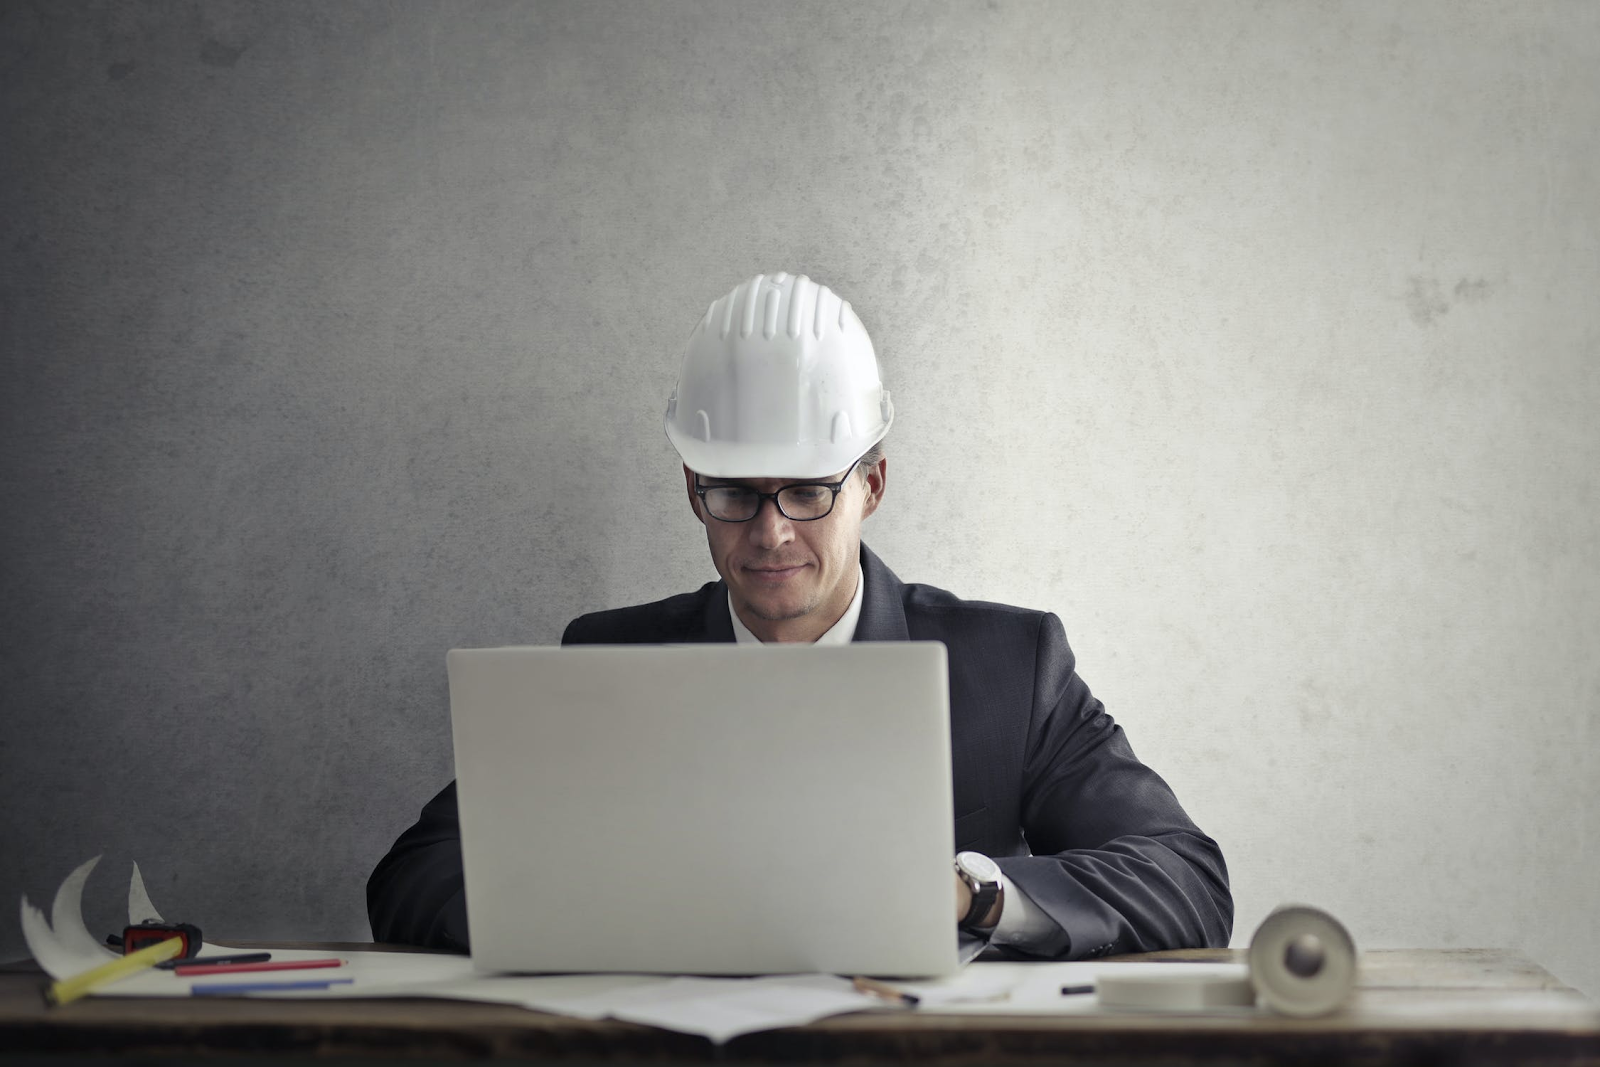 Man with white hard hat working on a laptop